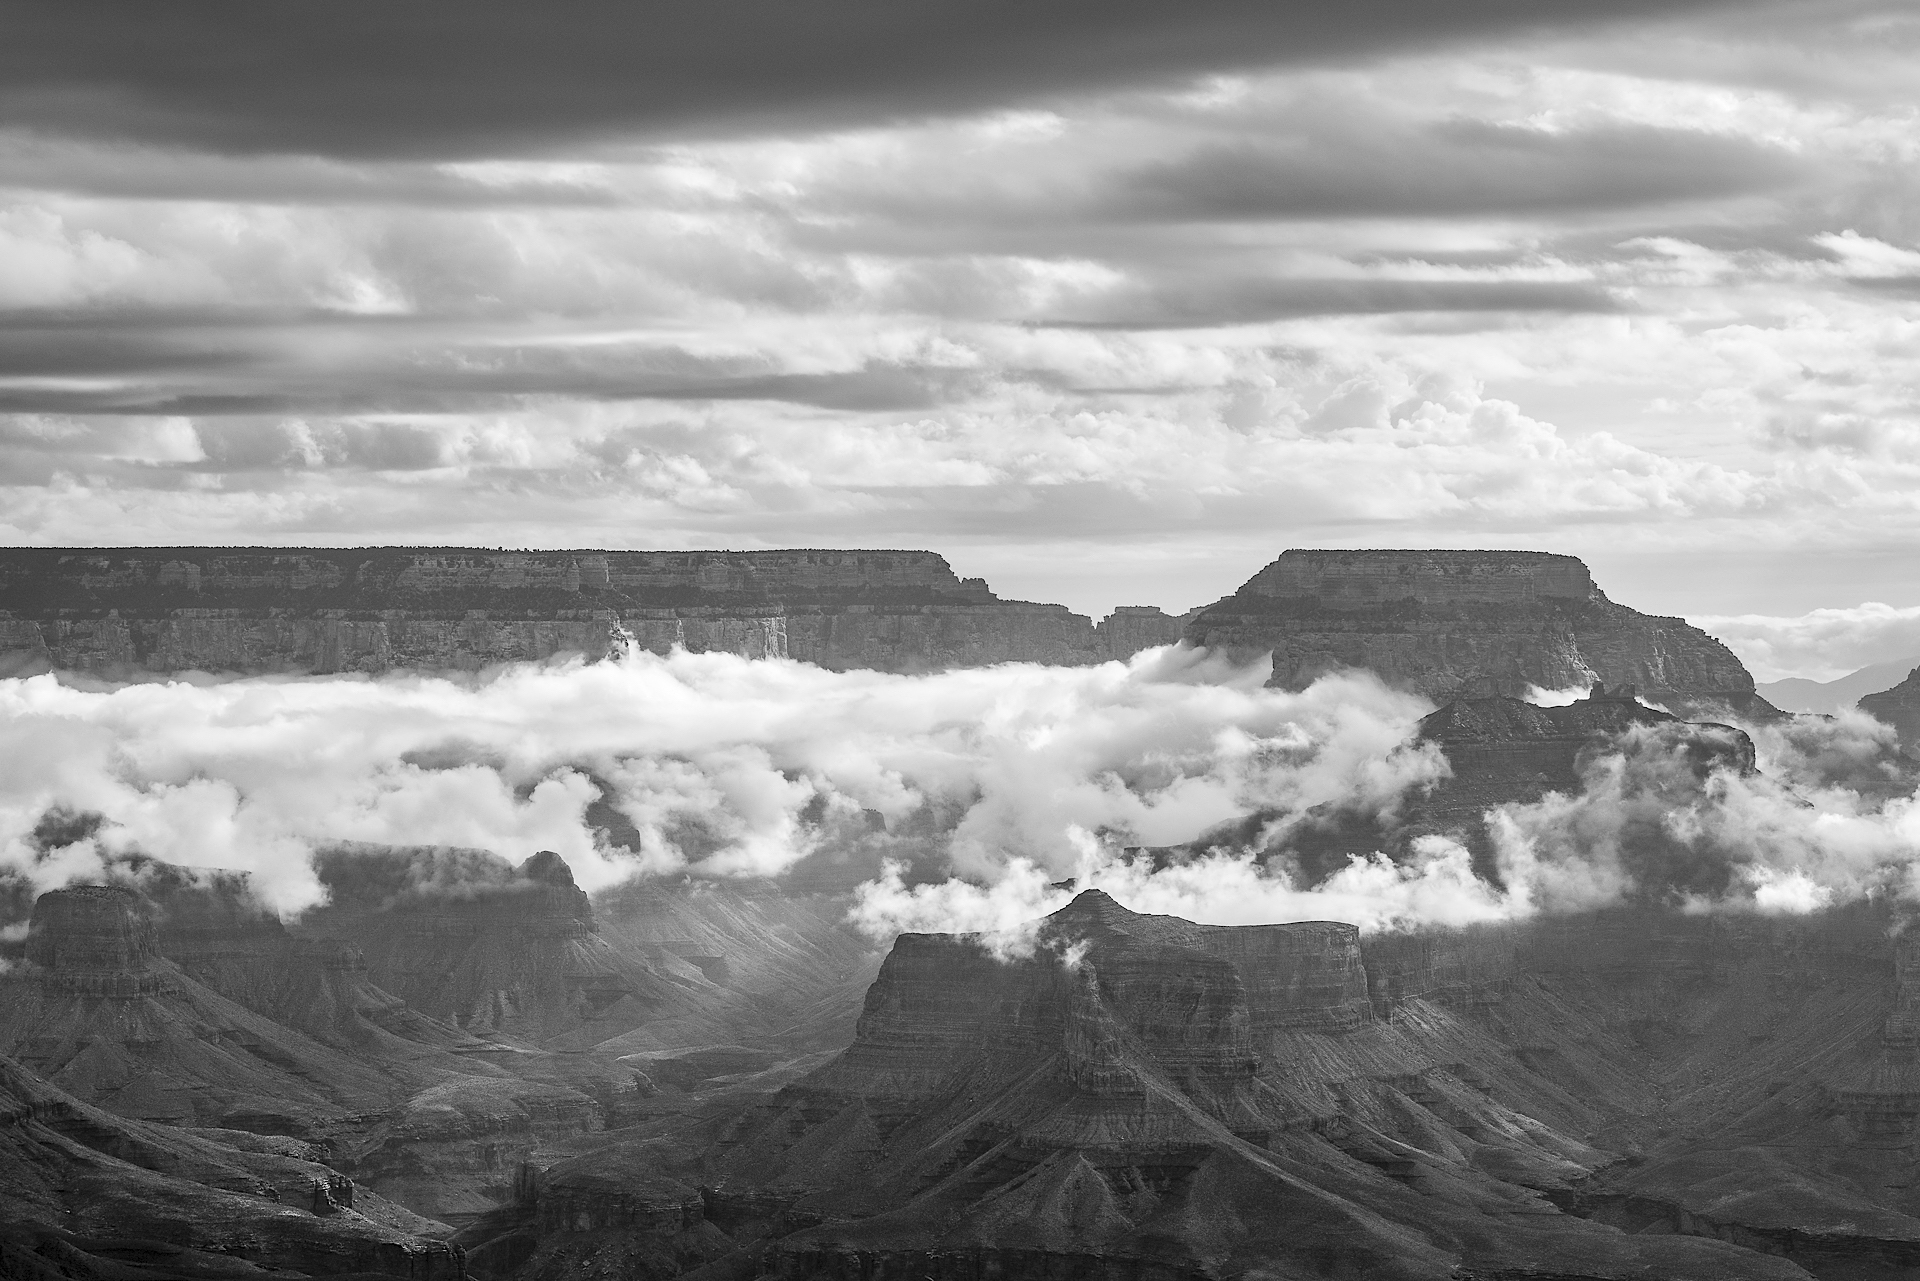 Morning clouds over the Grand Canyon from Yavapai Point